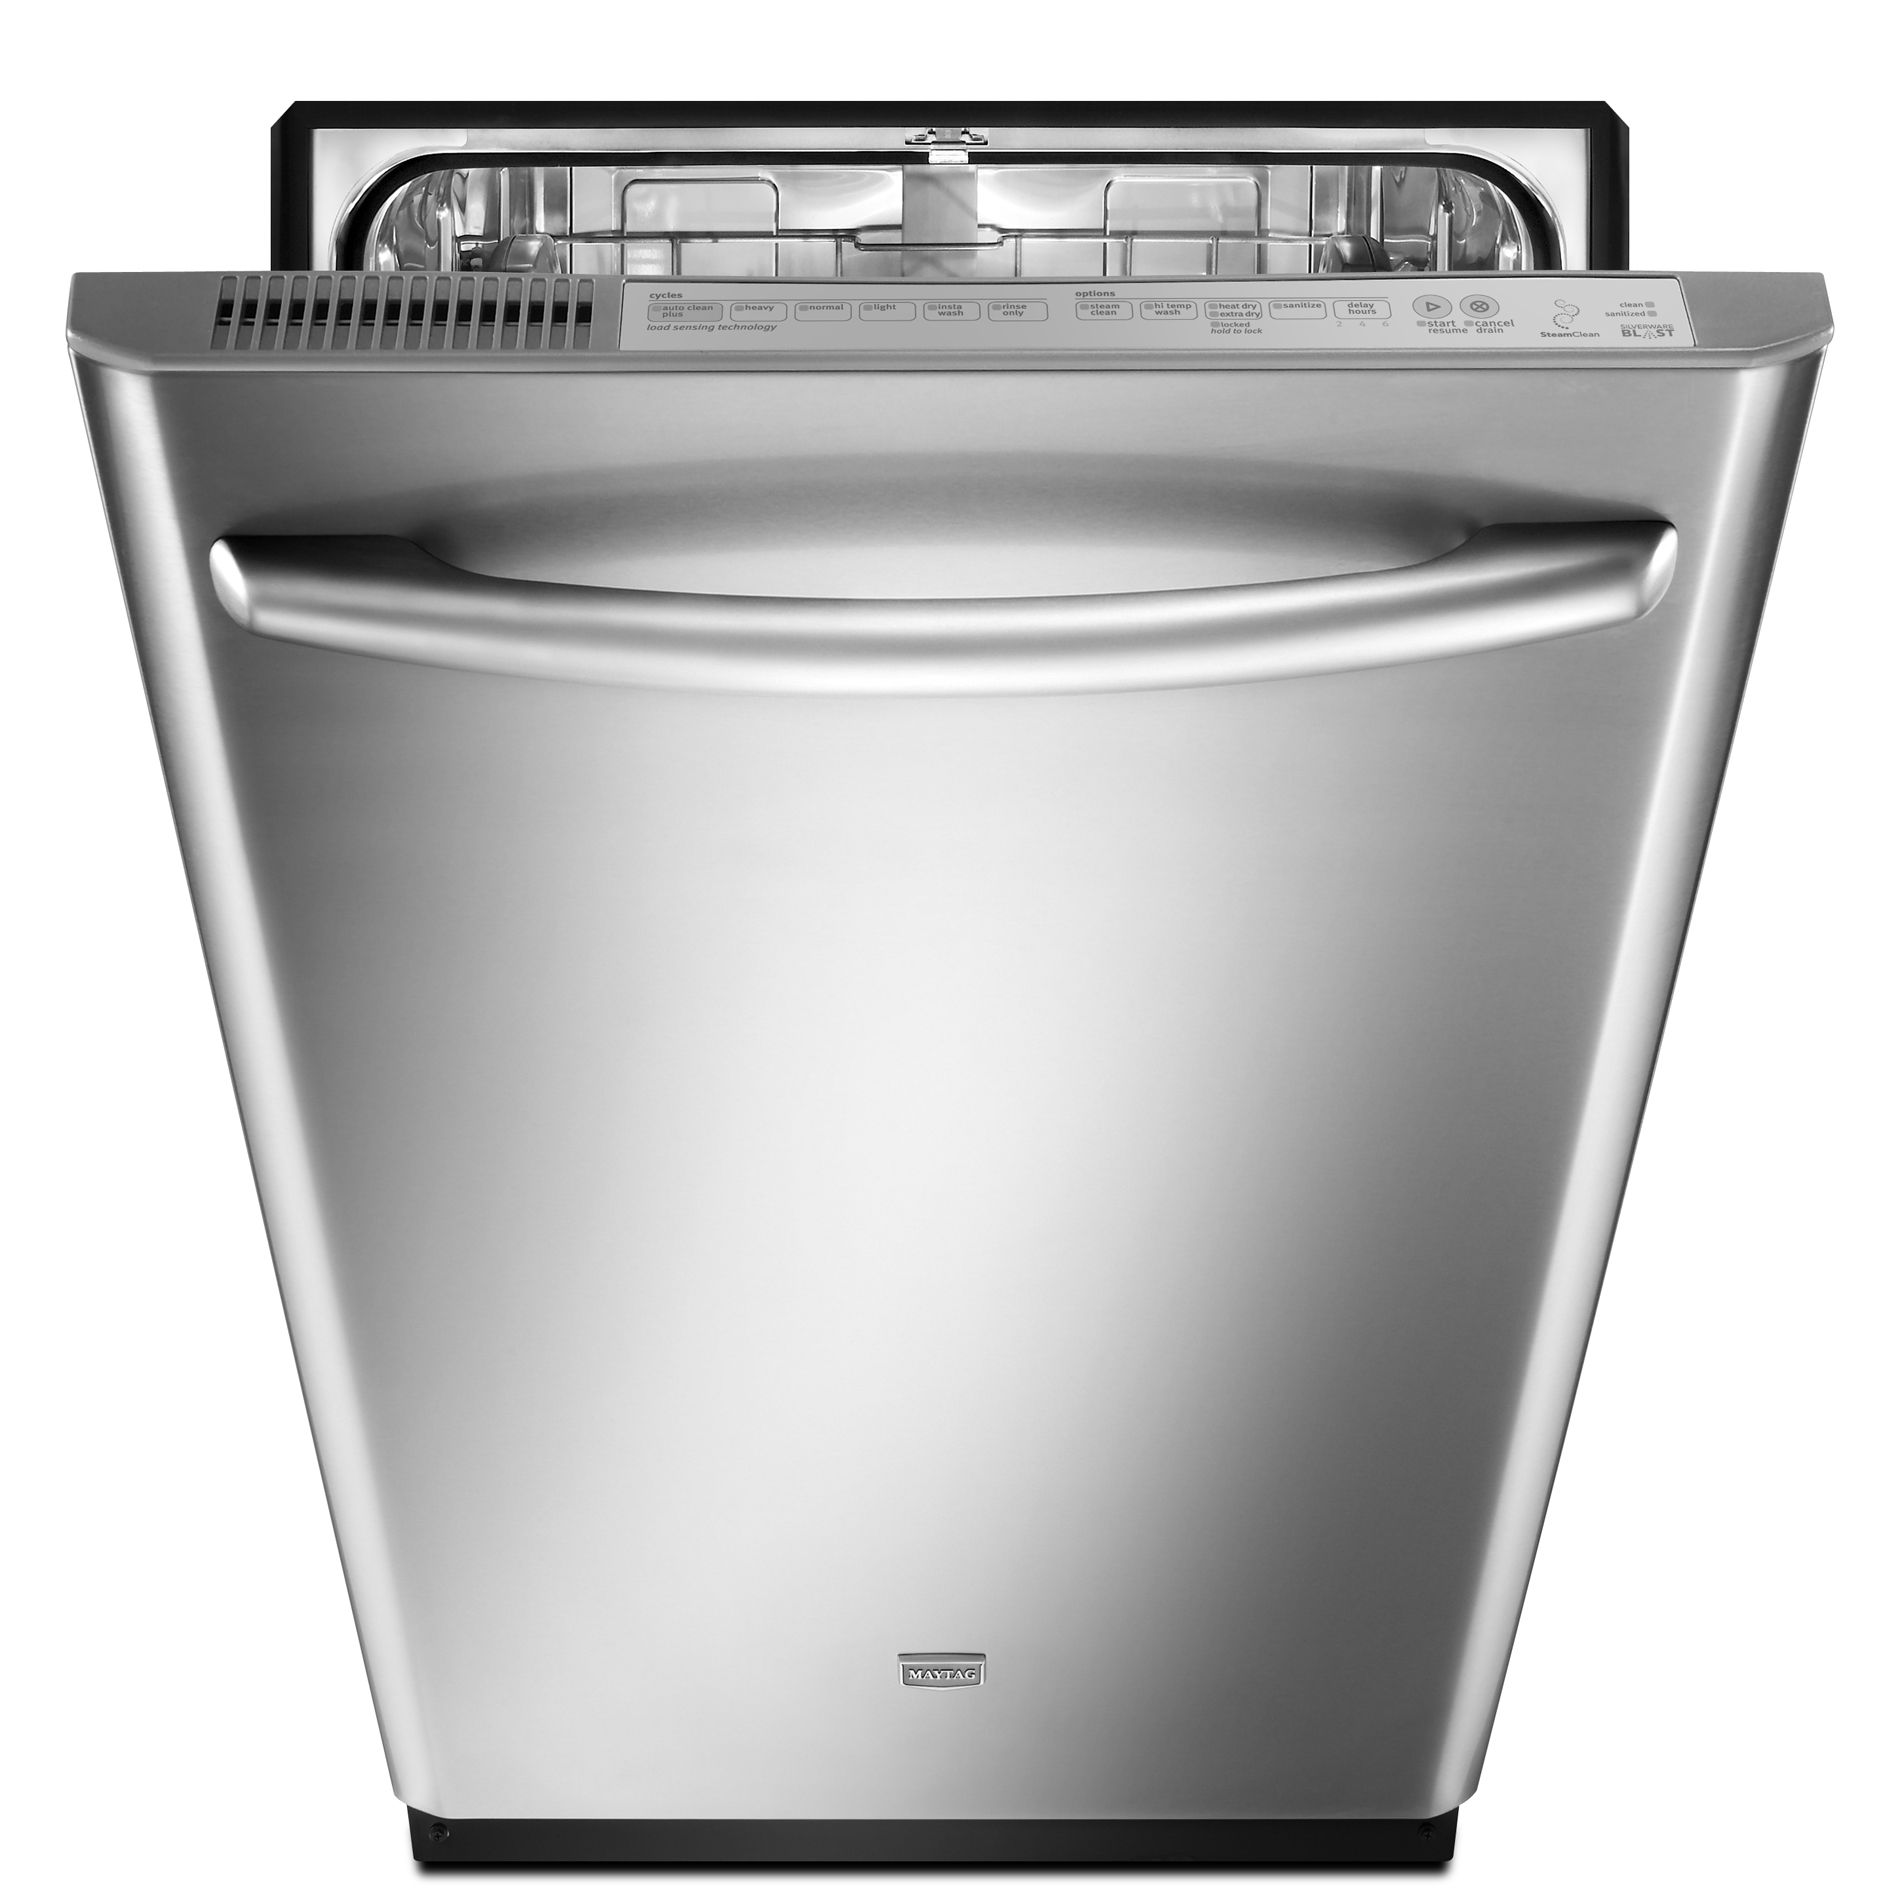 Maytag JetClean® Plus 24 in. Built-In Dishwasher with Fully Integrated Door - Stainless Steel